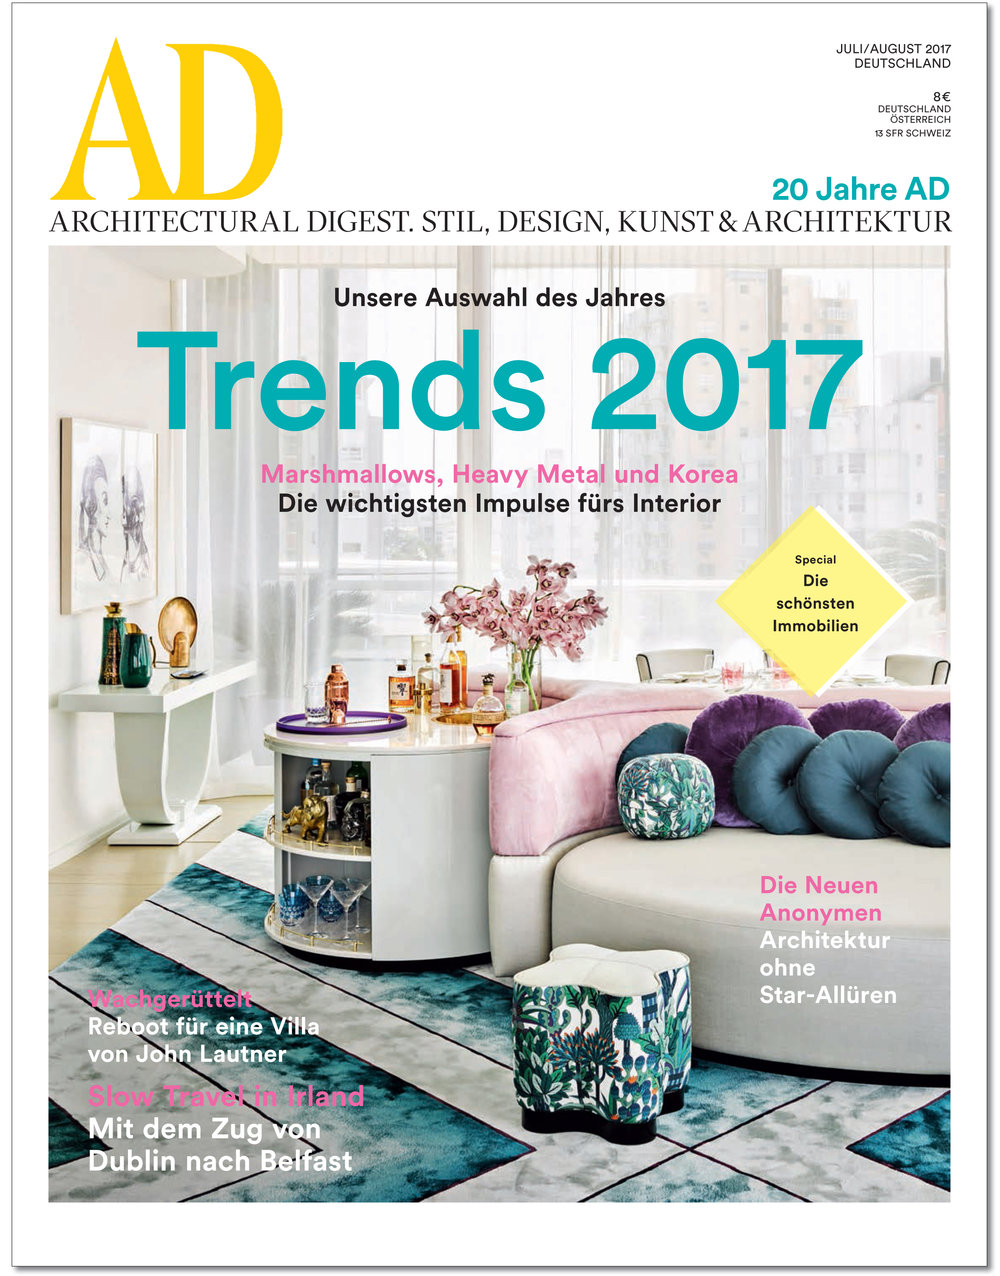 AD Germany July 2017 cover.jpg